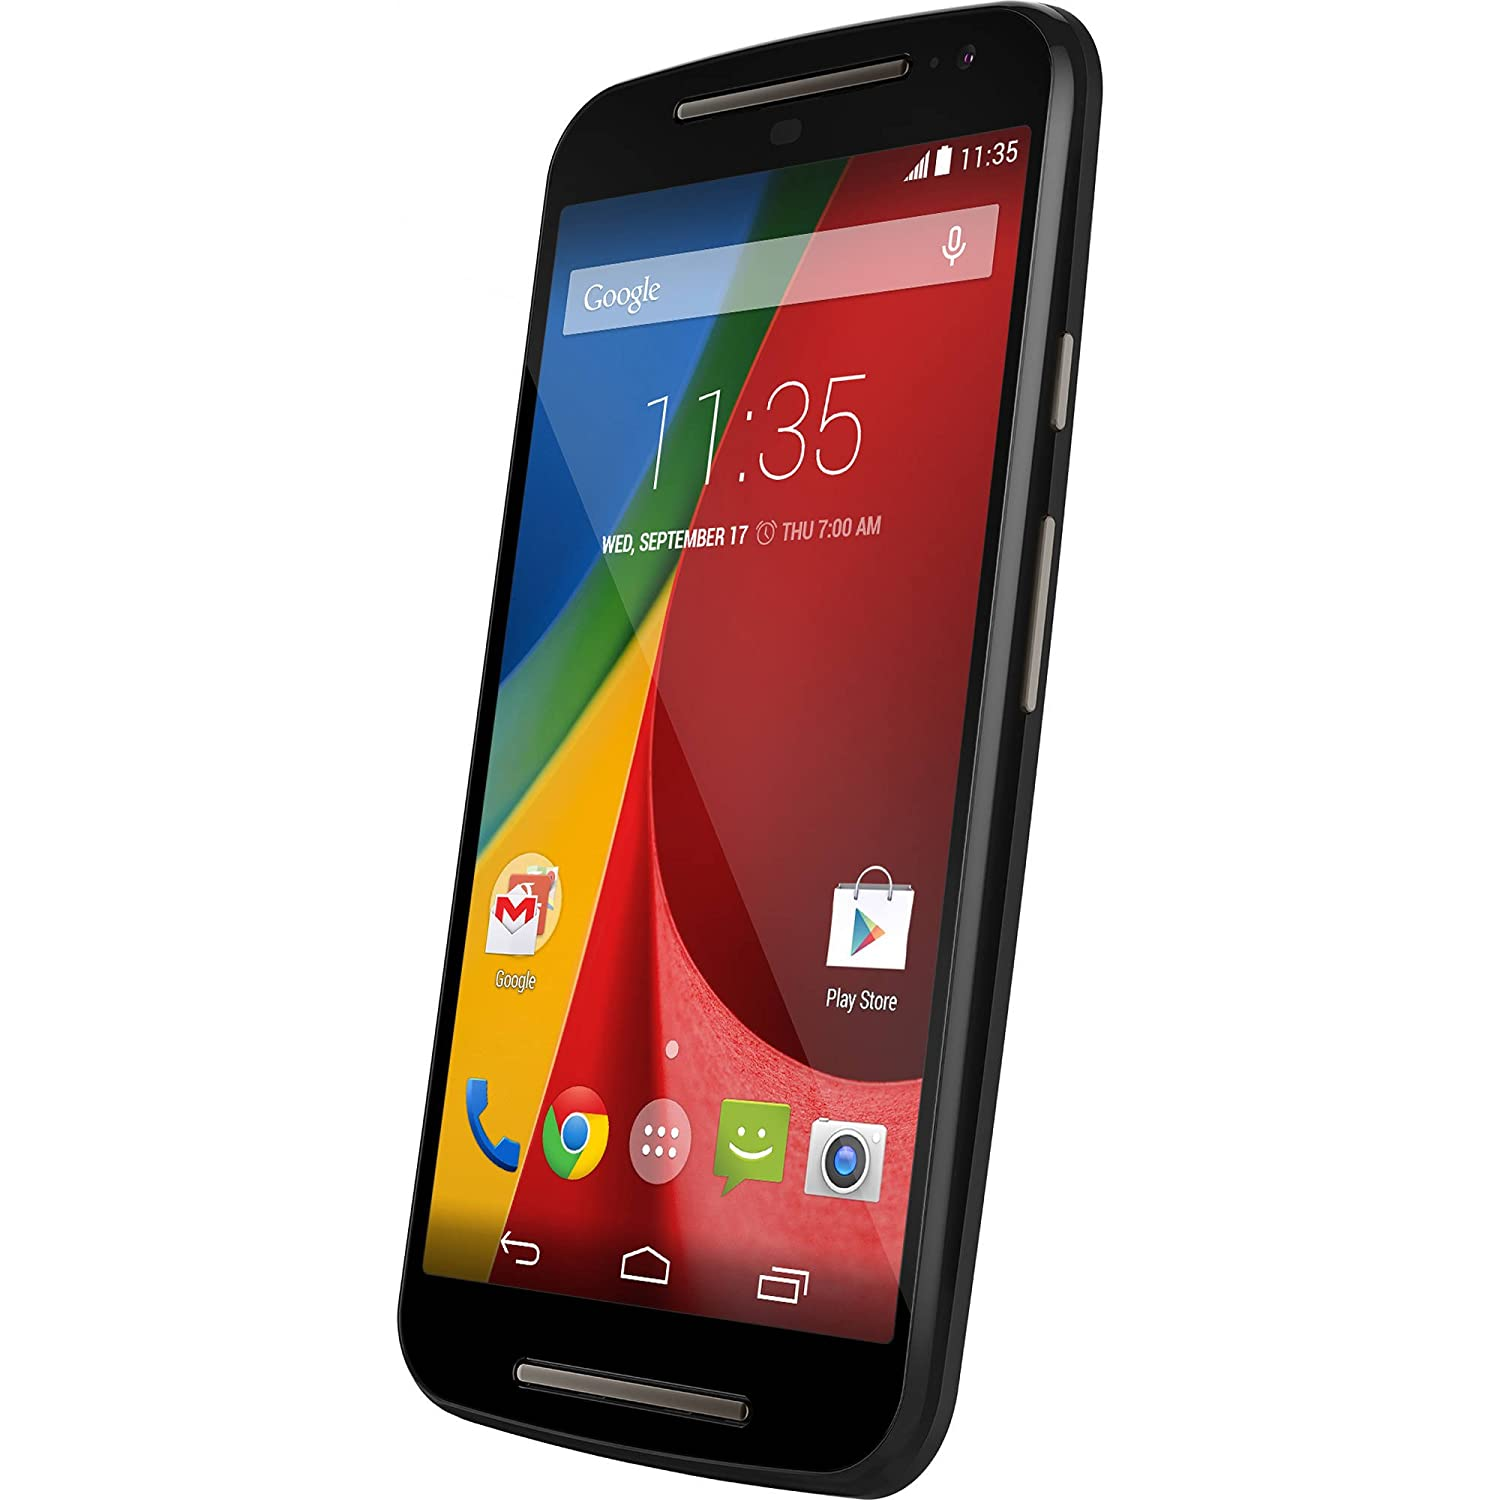 motorola g. motorola moto g (2nd generation, xt1064) unlocked smartphone \u2013 8gb, black: amazon.ca: cell phones \u0026 accessories